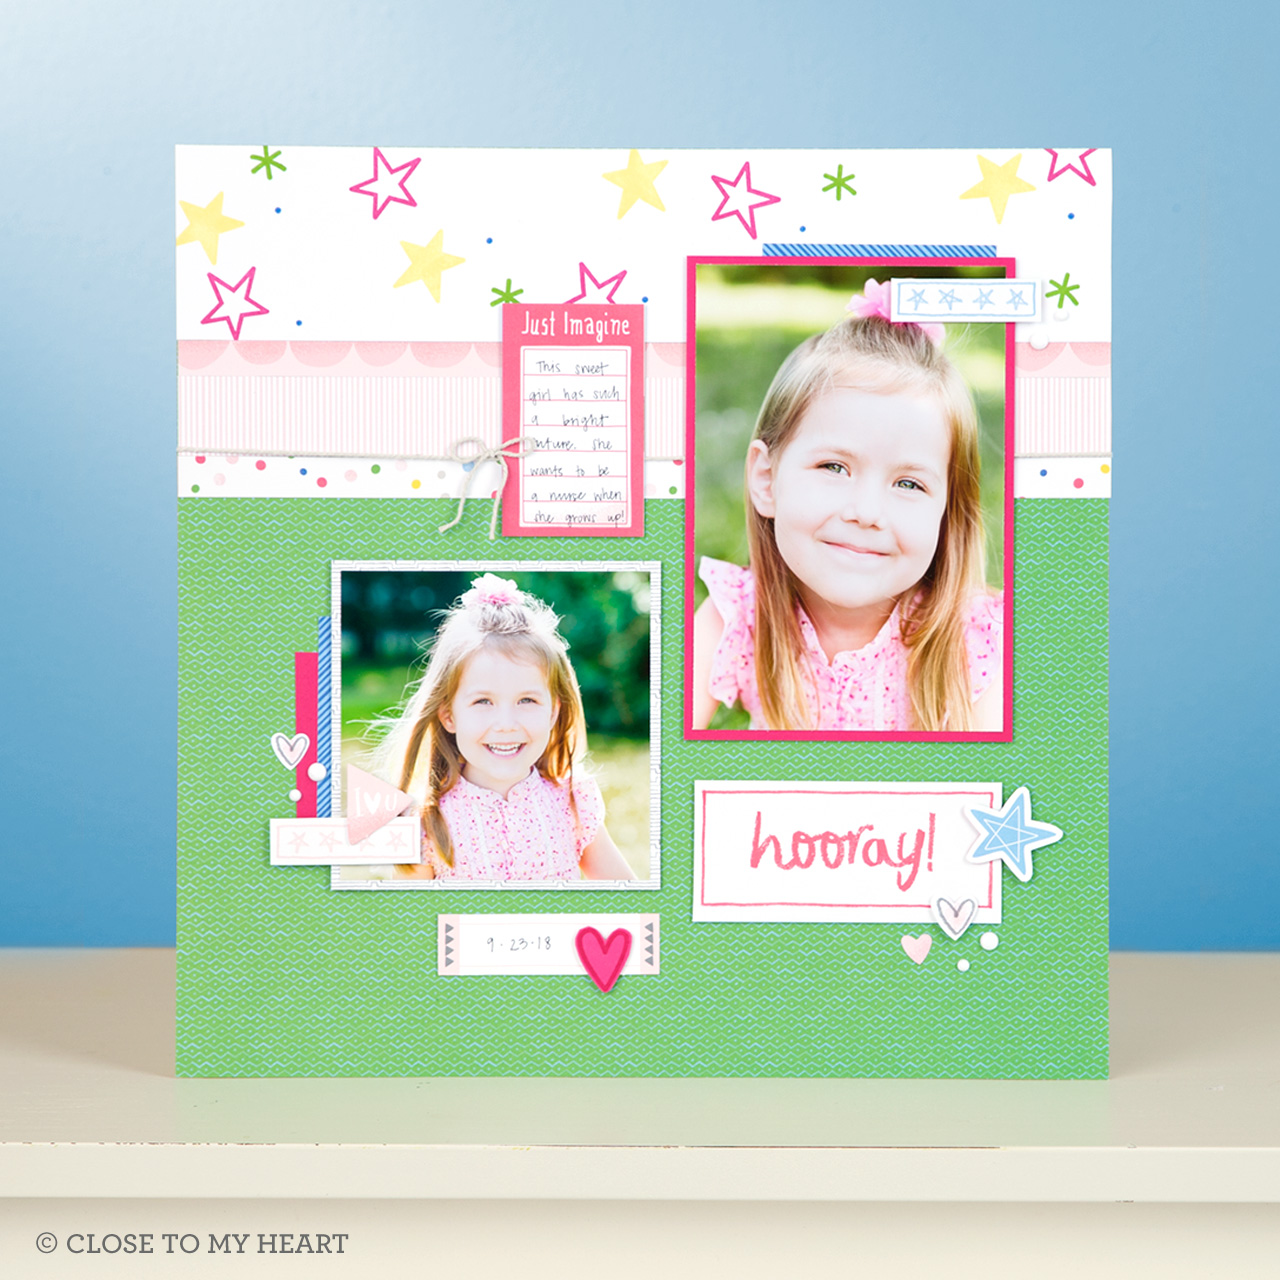 CTMH Hooray Scrapbook Layout